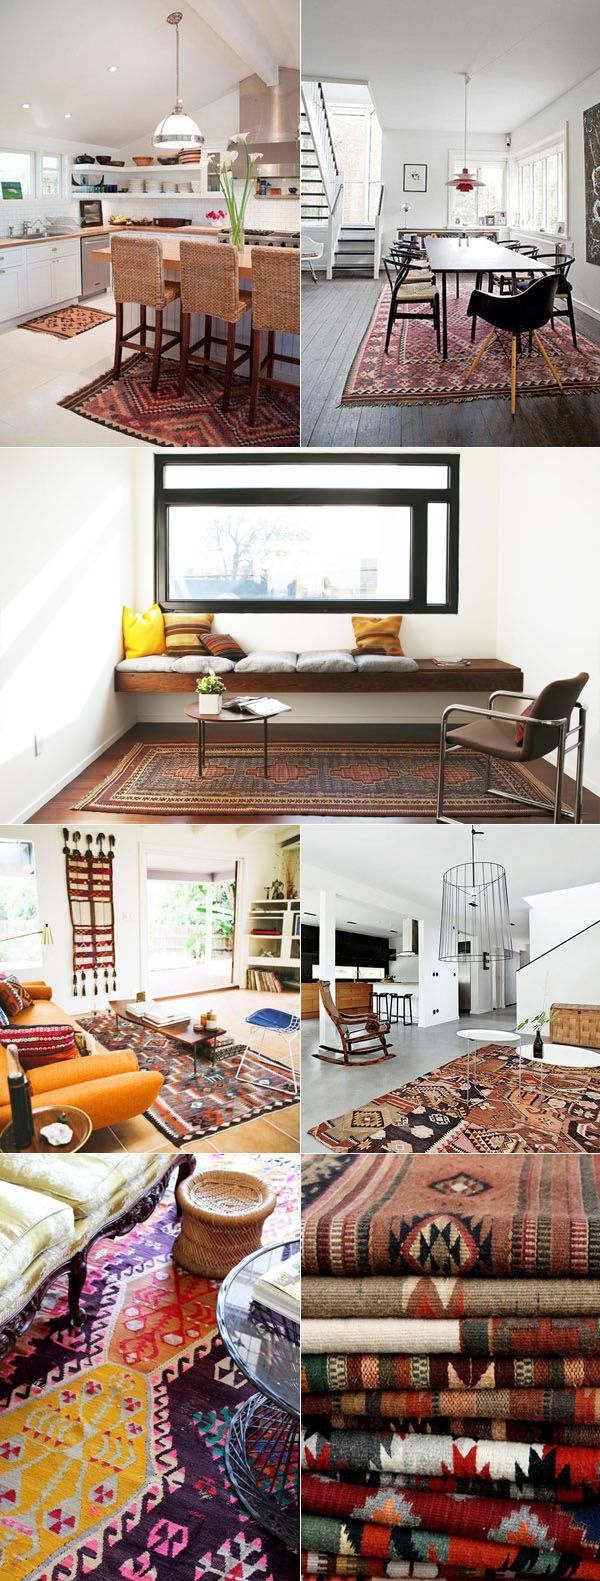 the geometric shapes of southwestern rugs pair so nicely with the clean lines of modern furniture